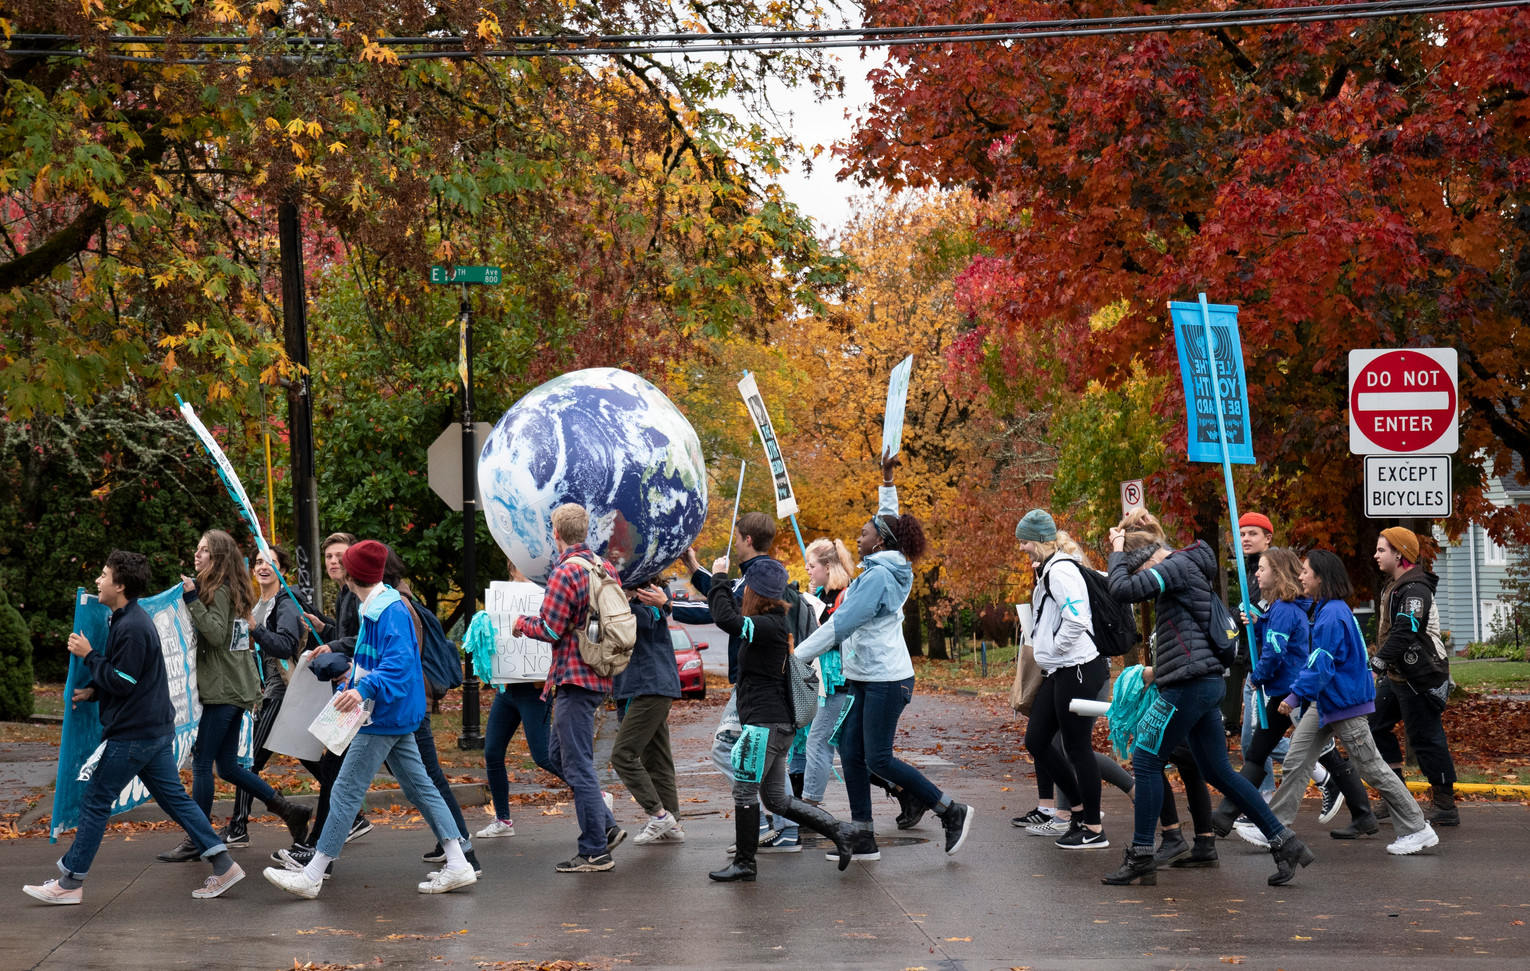 Students from South Eugene High School marched through the streets on Oct. 29, 2018 to show their support for the 21 plaintiffs of the Juliana v. United States, or Youth v. Gov. trial that was supposed to begin on this day but was held up in the courts.